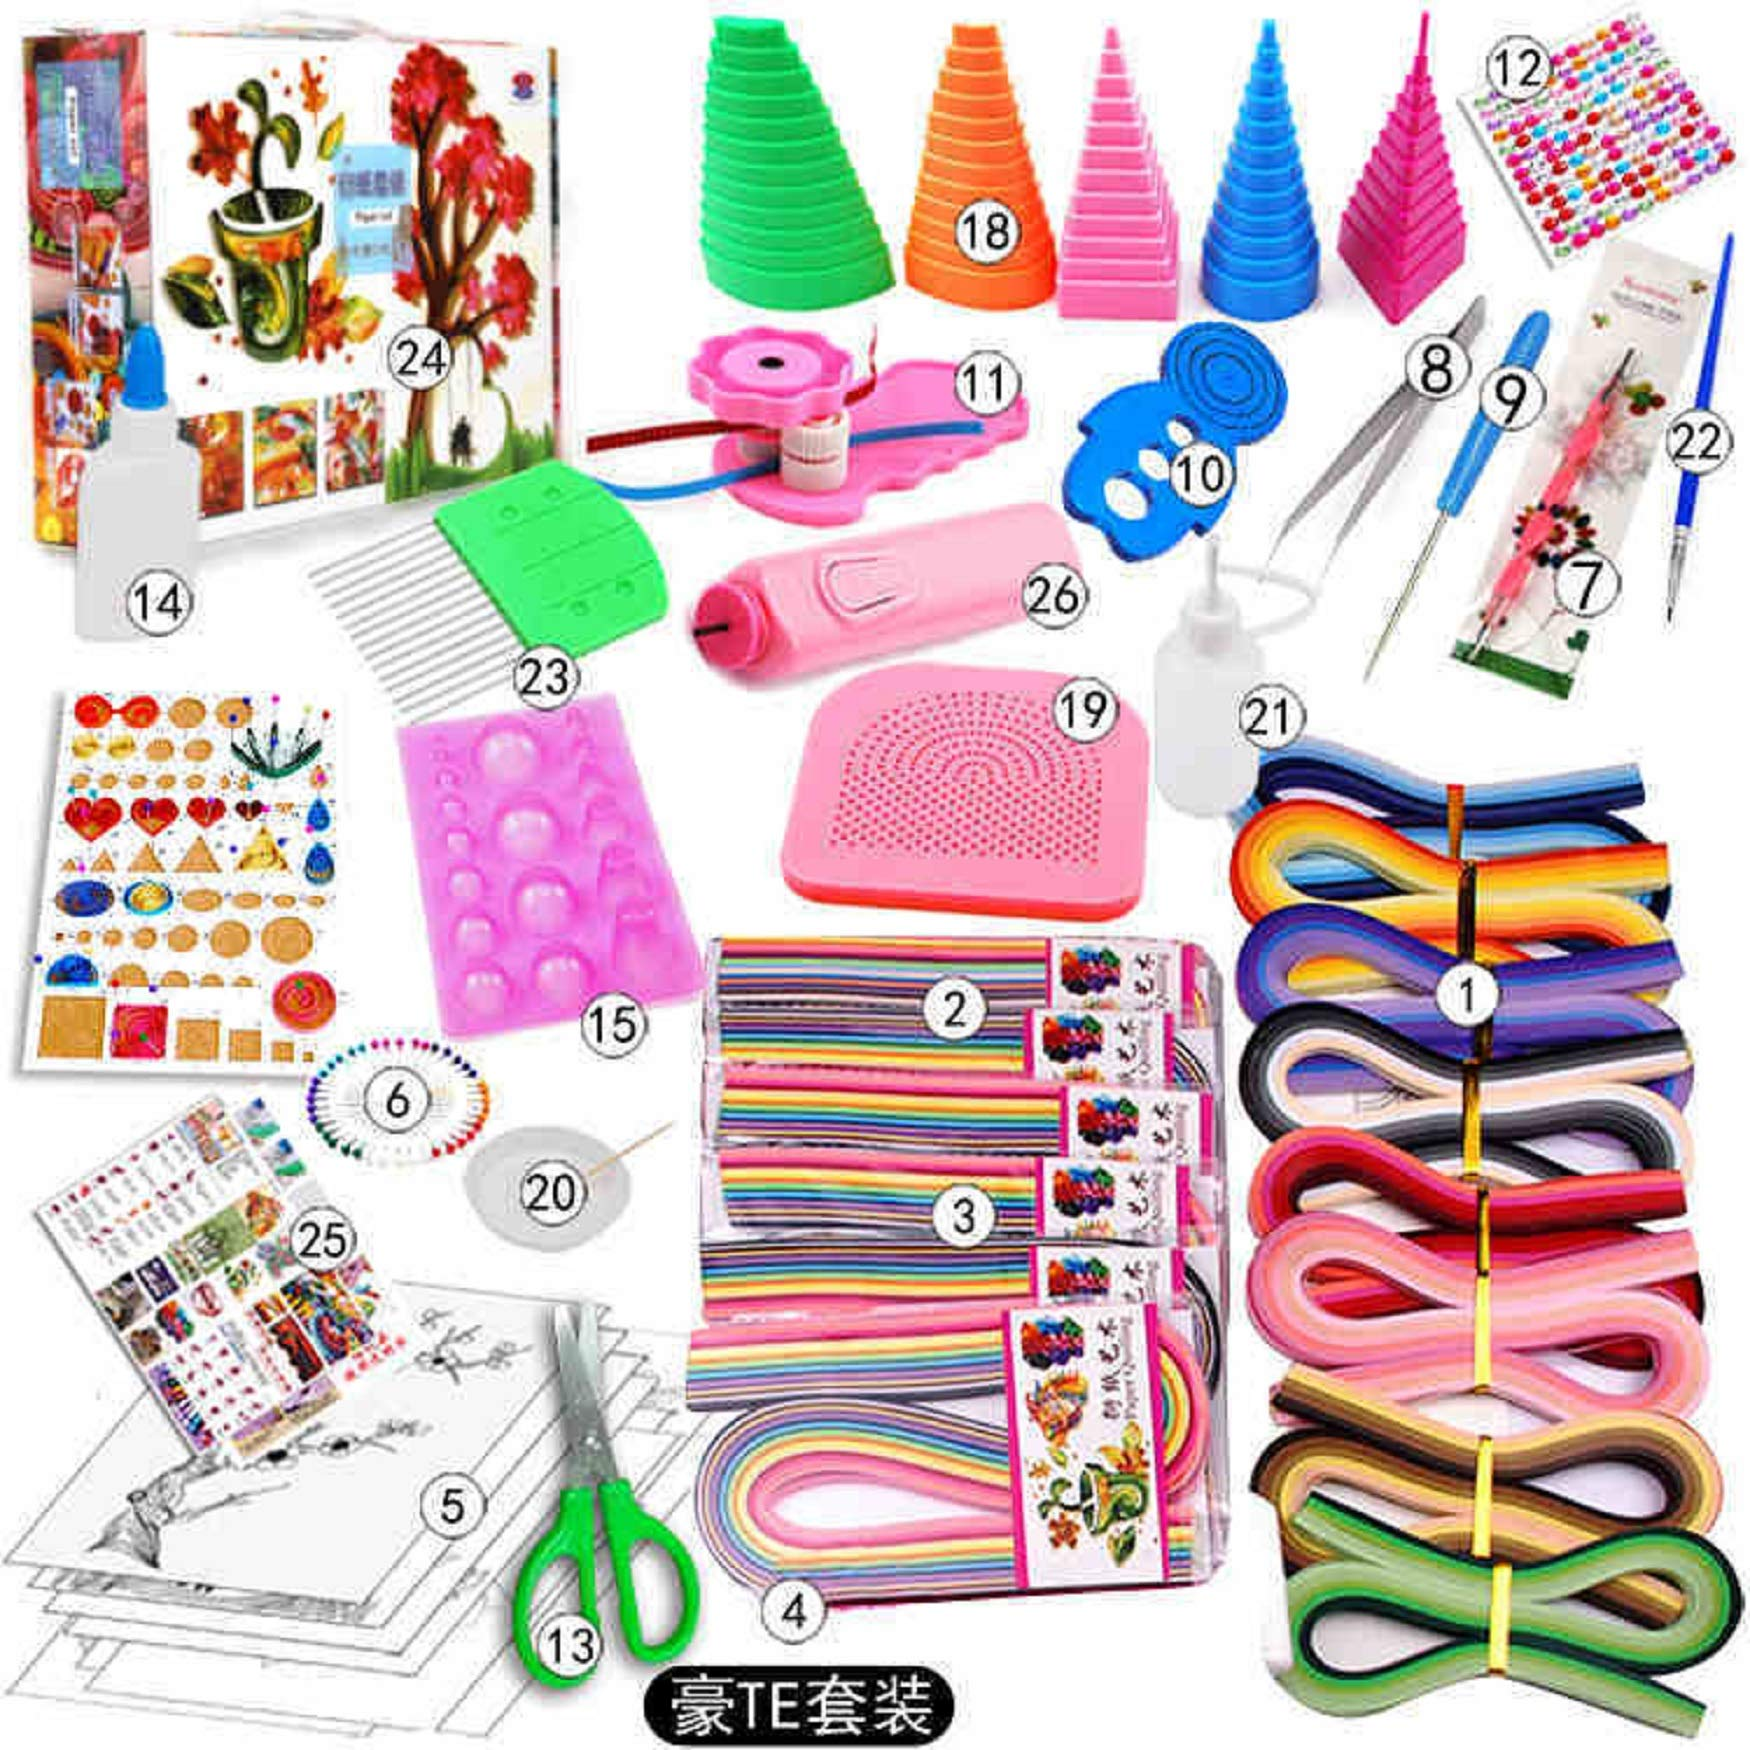 DIY Paper Quilling Handmade Tools Set Template Tweezer Slotted Tool Kit Paper Card Crafts Decorating Tools Artwork C81 (1) by Souvenir